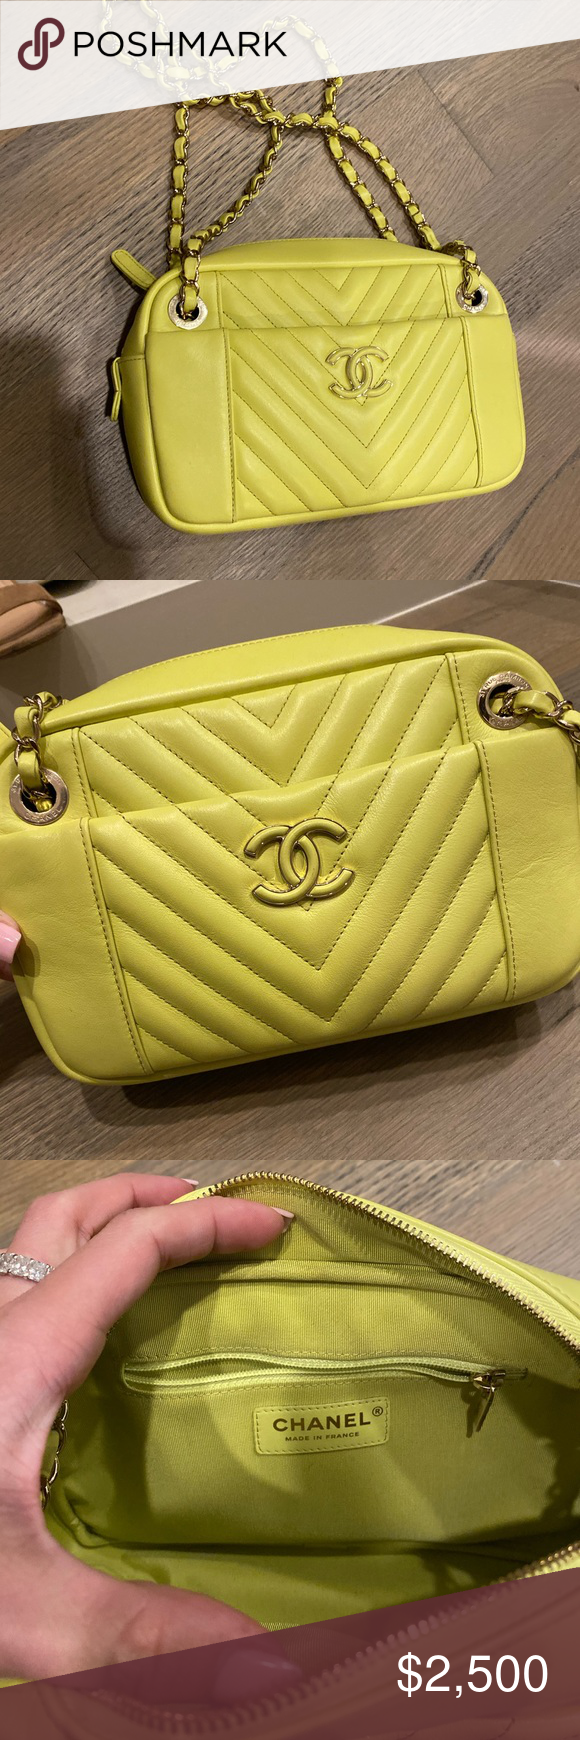 Authentic Neon Chanel Camera Purse 100% Authentic neon Chanel camera bag. Purchased at the Chanel store on Rodeo Drive, snapshot of receipt included. Lamb skin, used only once. PERFECT condition. DM for more info Bags Shoulder Bags #camerapurse